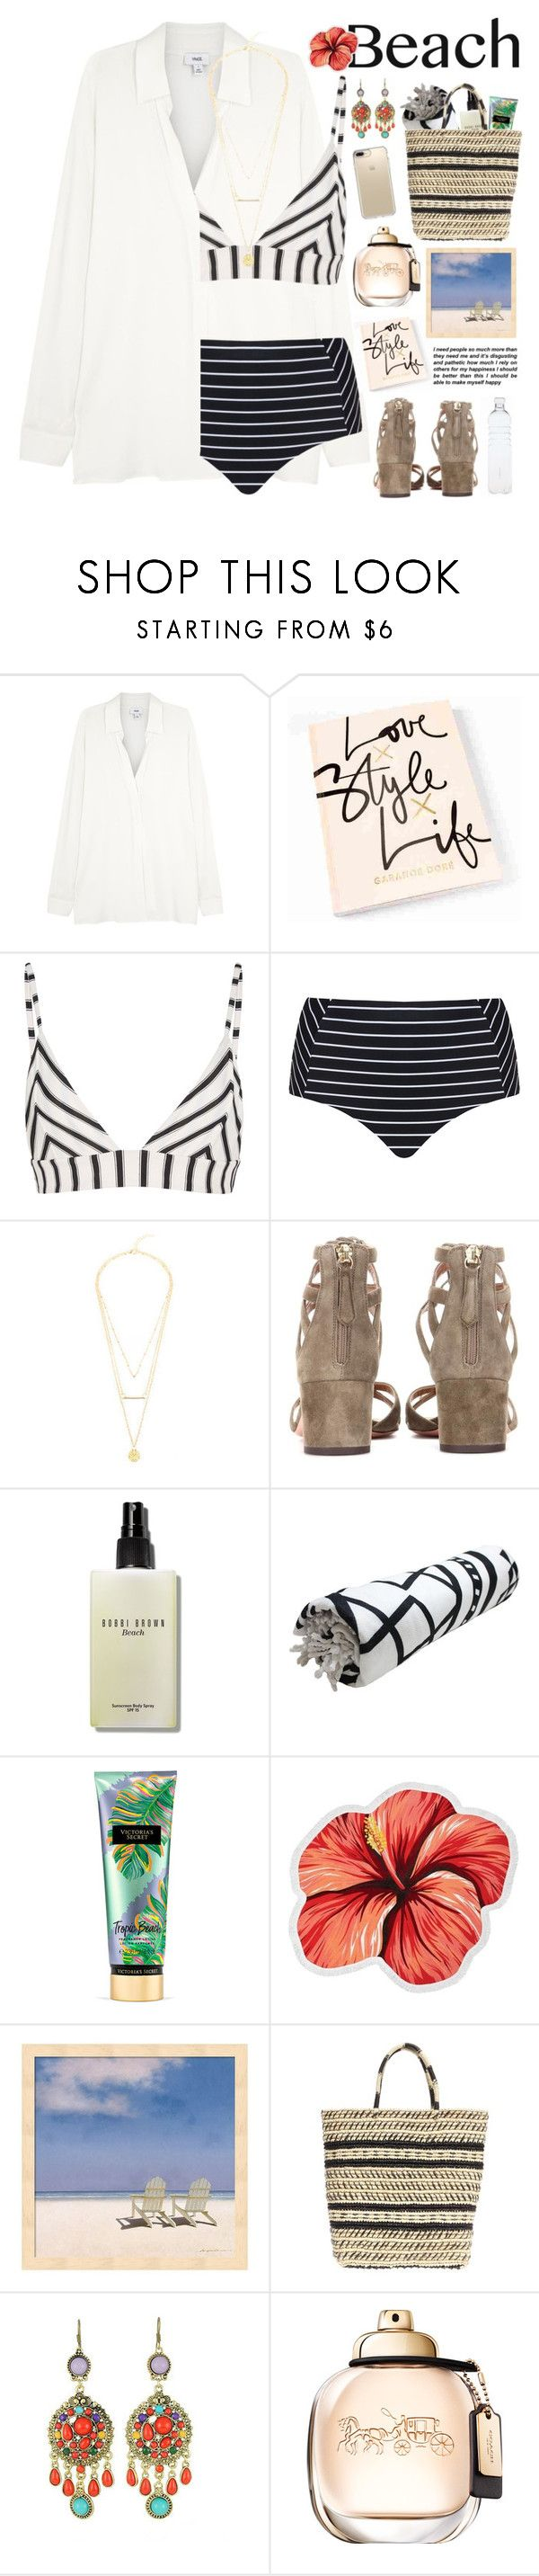 """2579. Sun's Out: Beach Day"" by chocolatepumma ❤ liked on Polyvore featuring Vince, Tori Praver Swimwear, Cactus, Aquazzura, Bobbi Brown Cosmetics, Victoria's Secret, LaMont, Sensi Studio, WithChic and Speck"